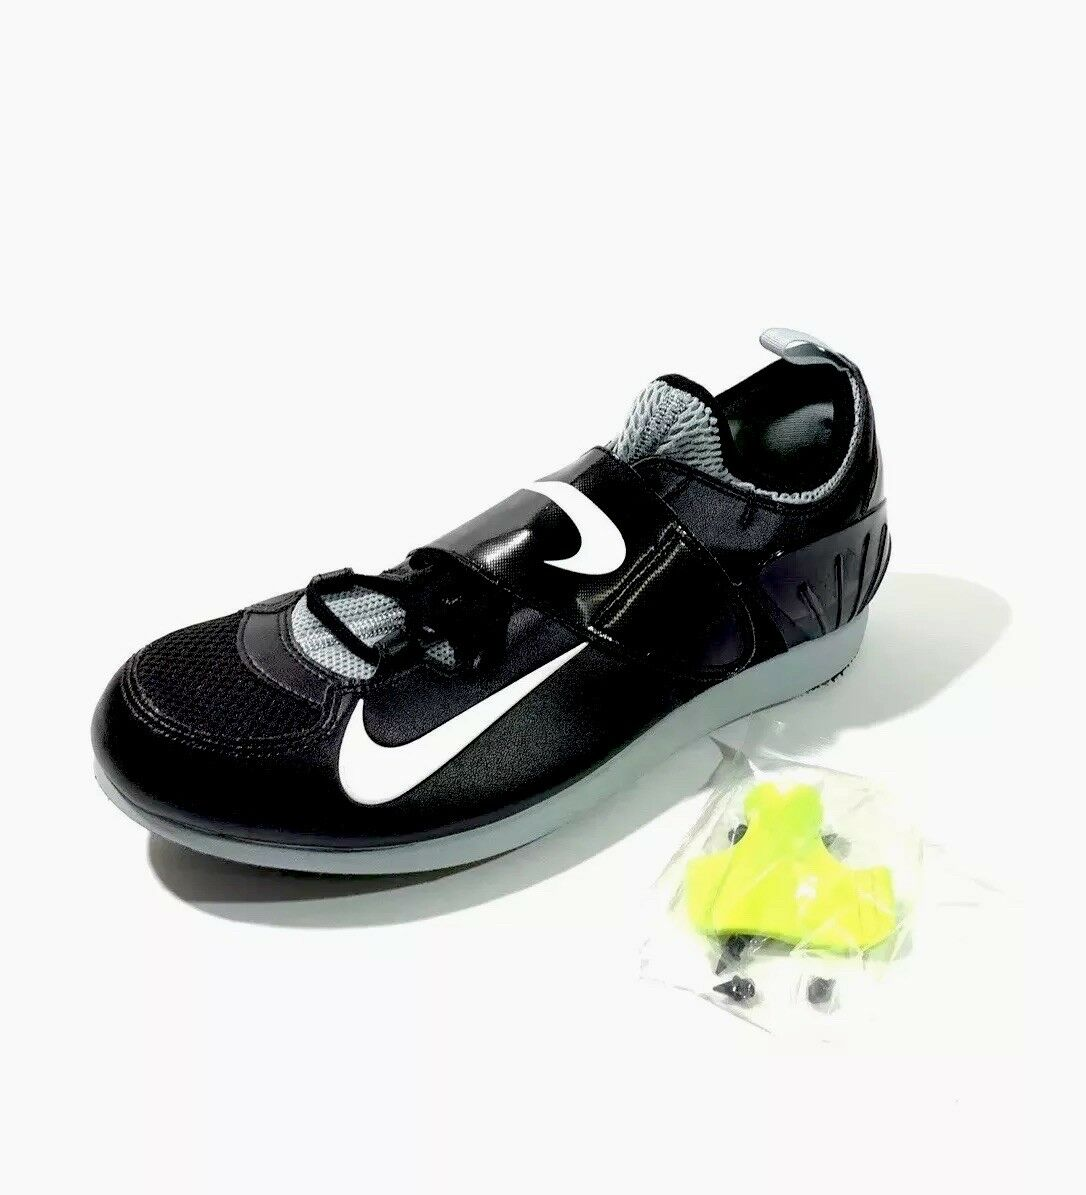 Nike Zoom Pole Vault PV II Track Spikes 317404-002 Size Mens 12 Black White